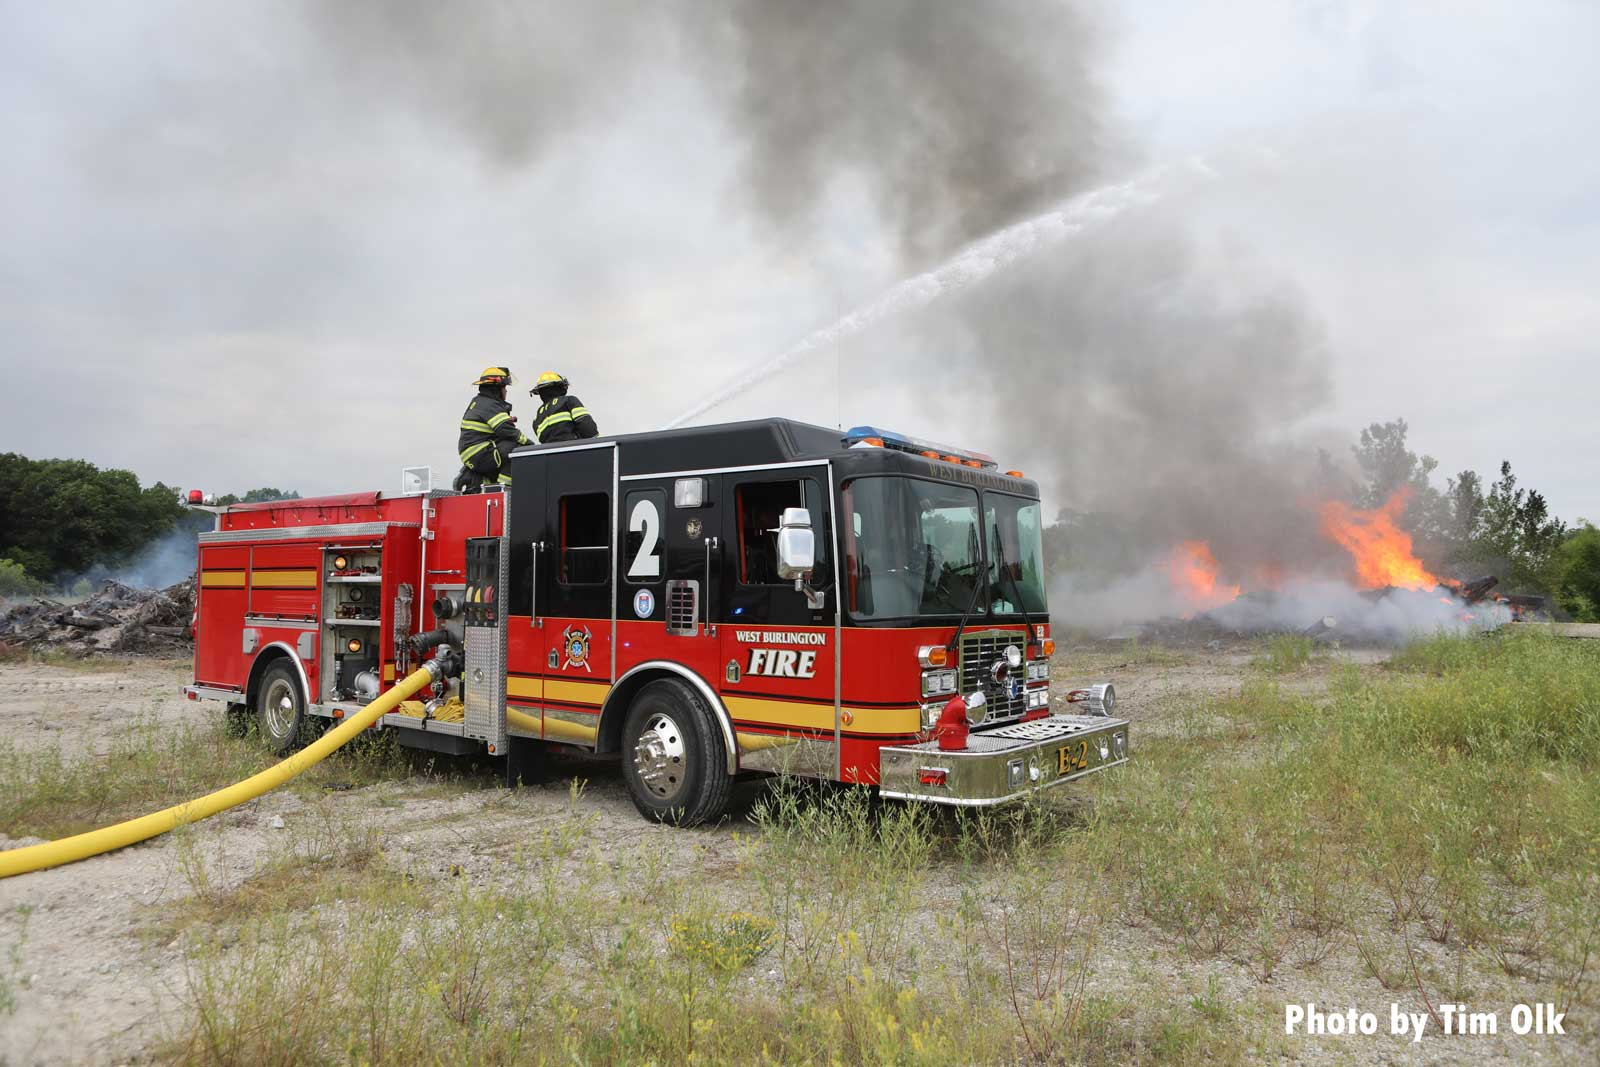 Fire truck with master stream on outdoors fire